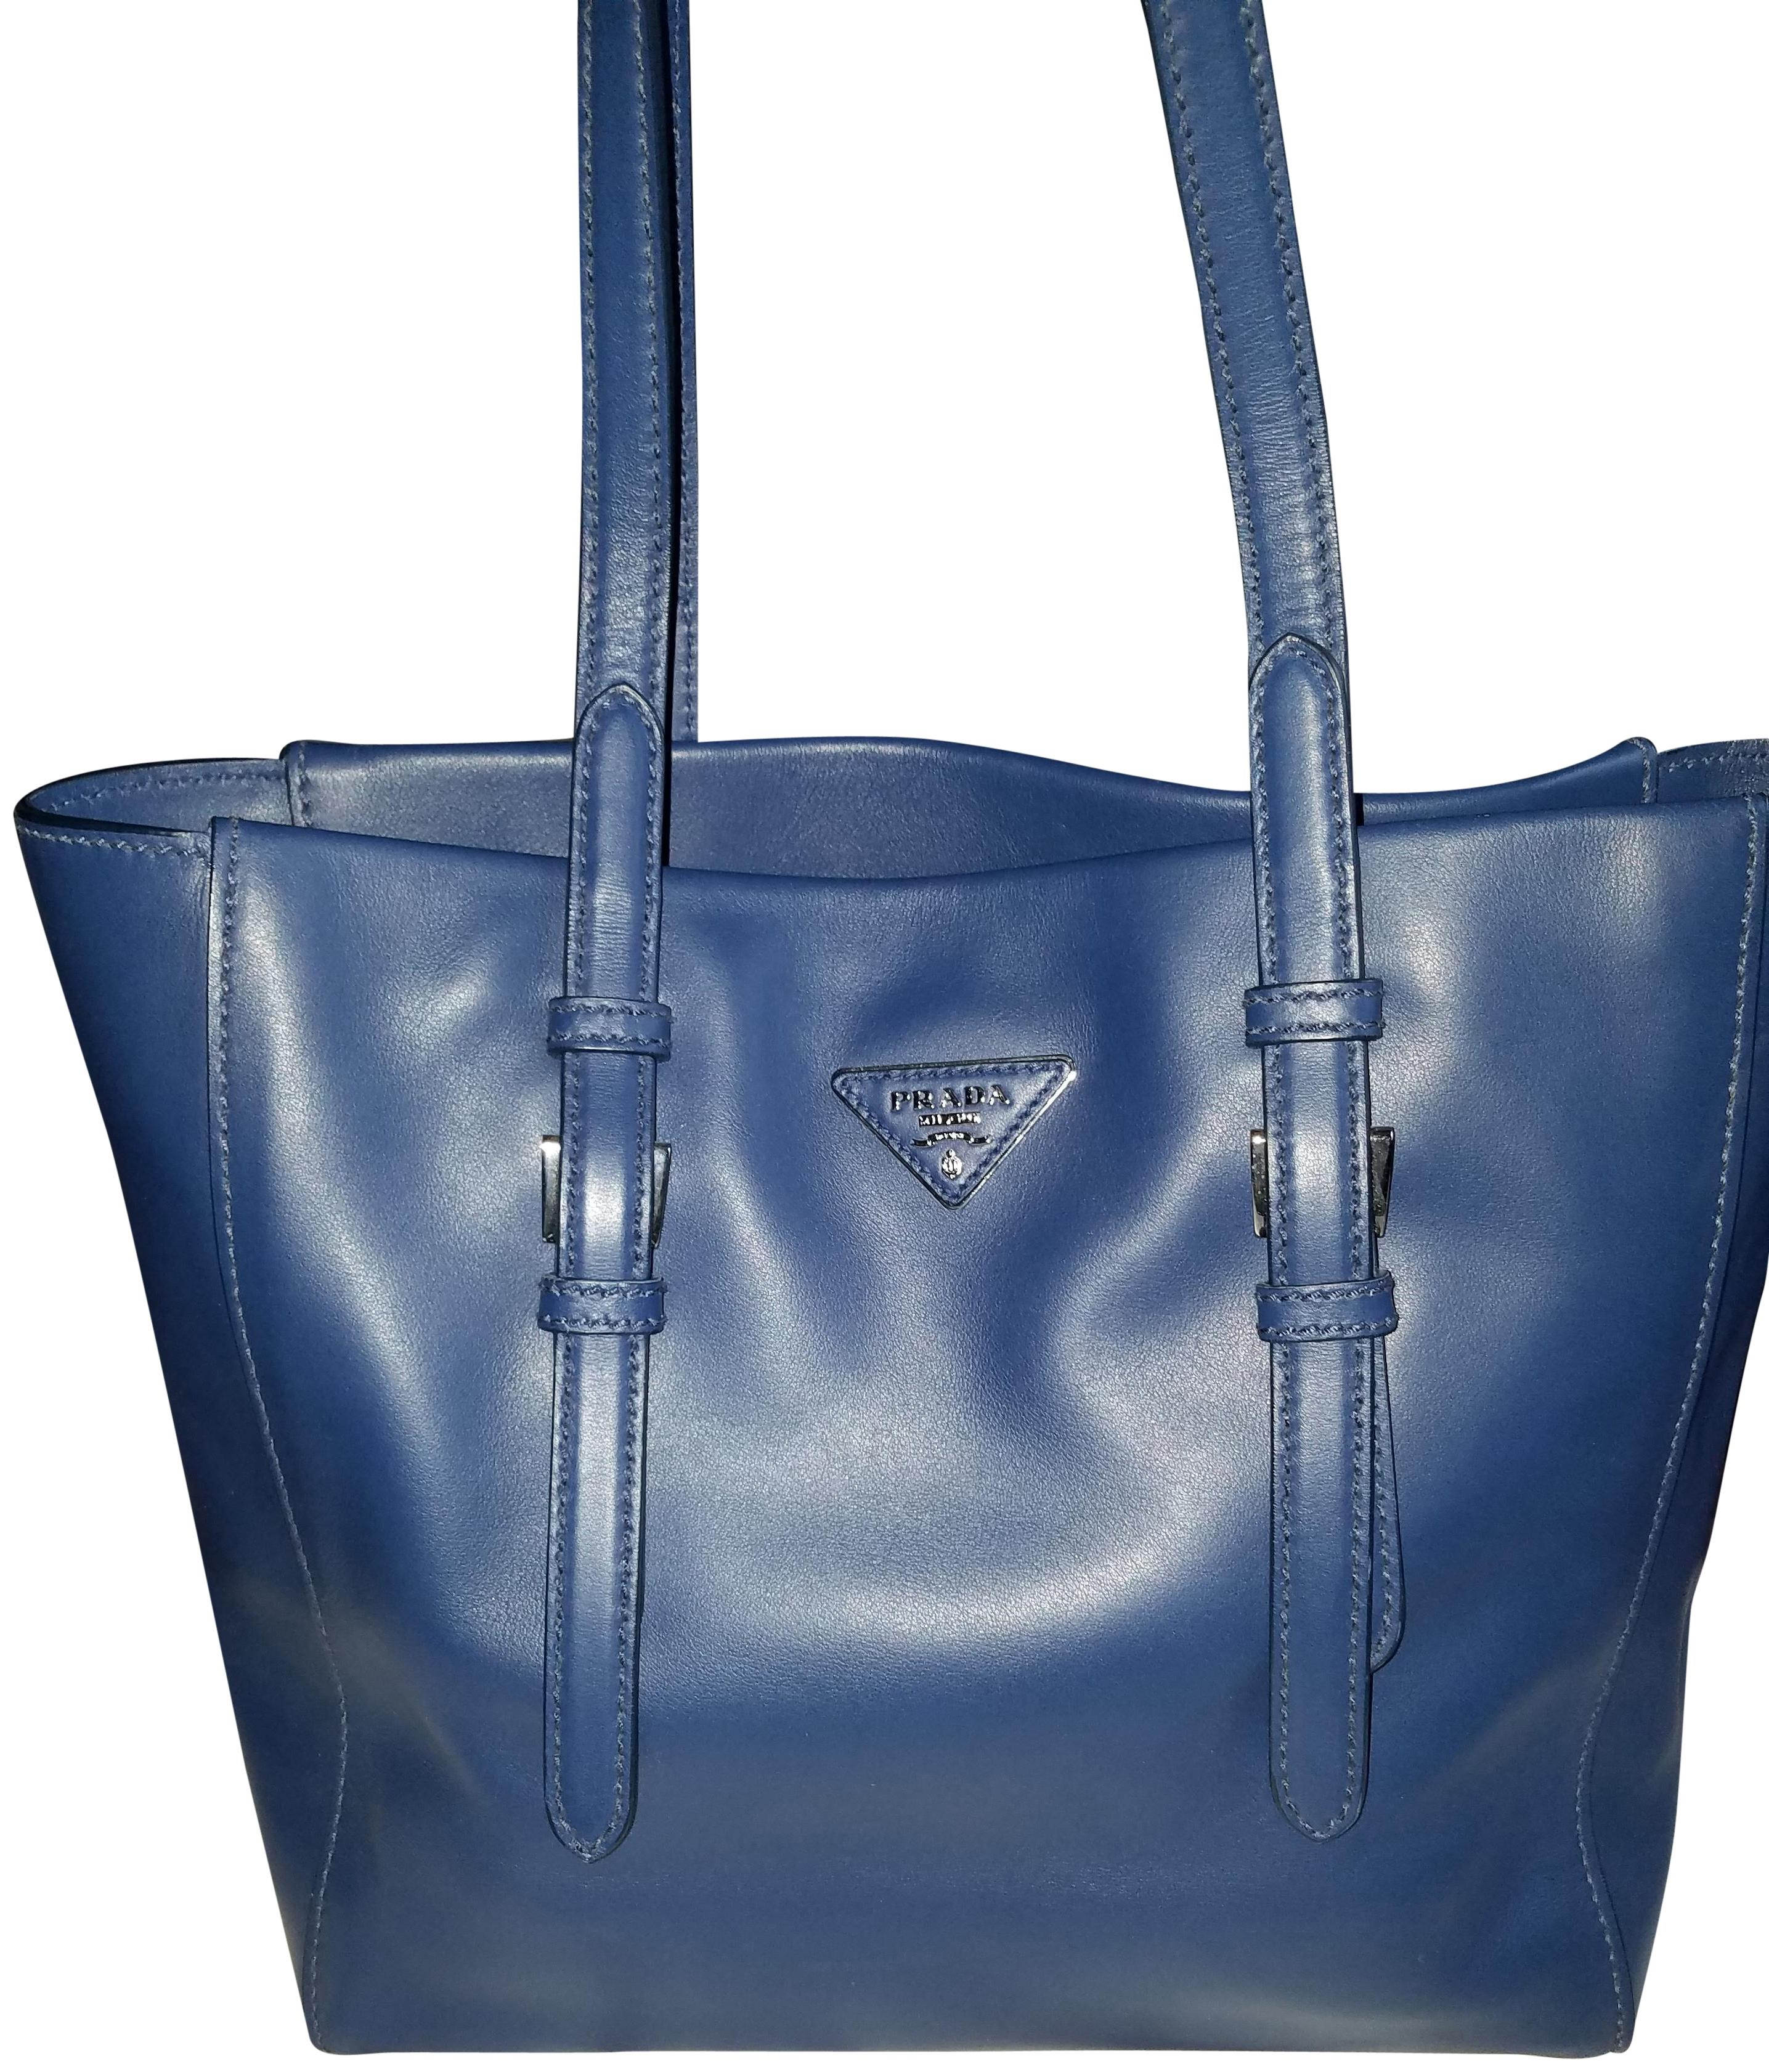 930602f296fb ... reduced prada leather bluette city sport tote in blue 8f93d e80a1